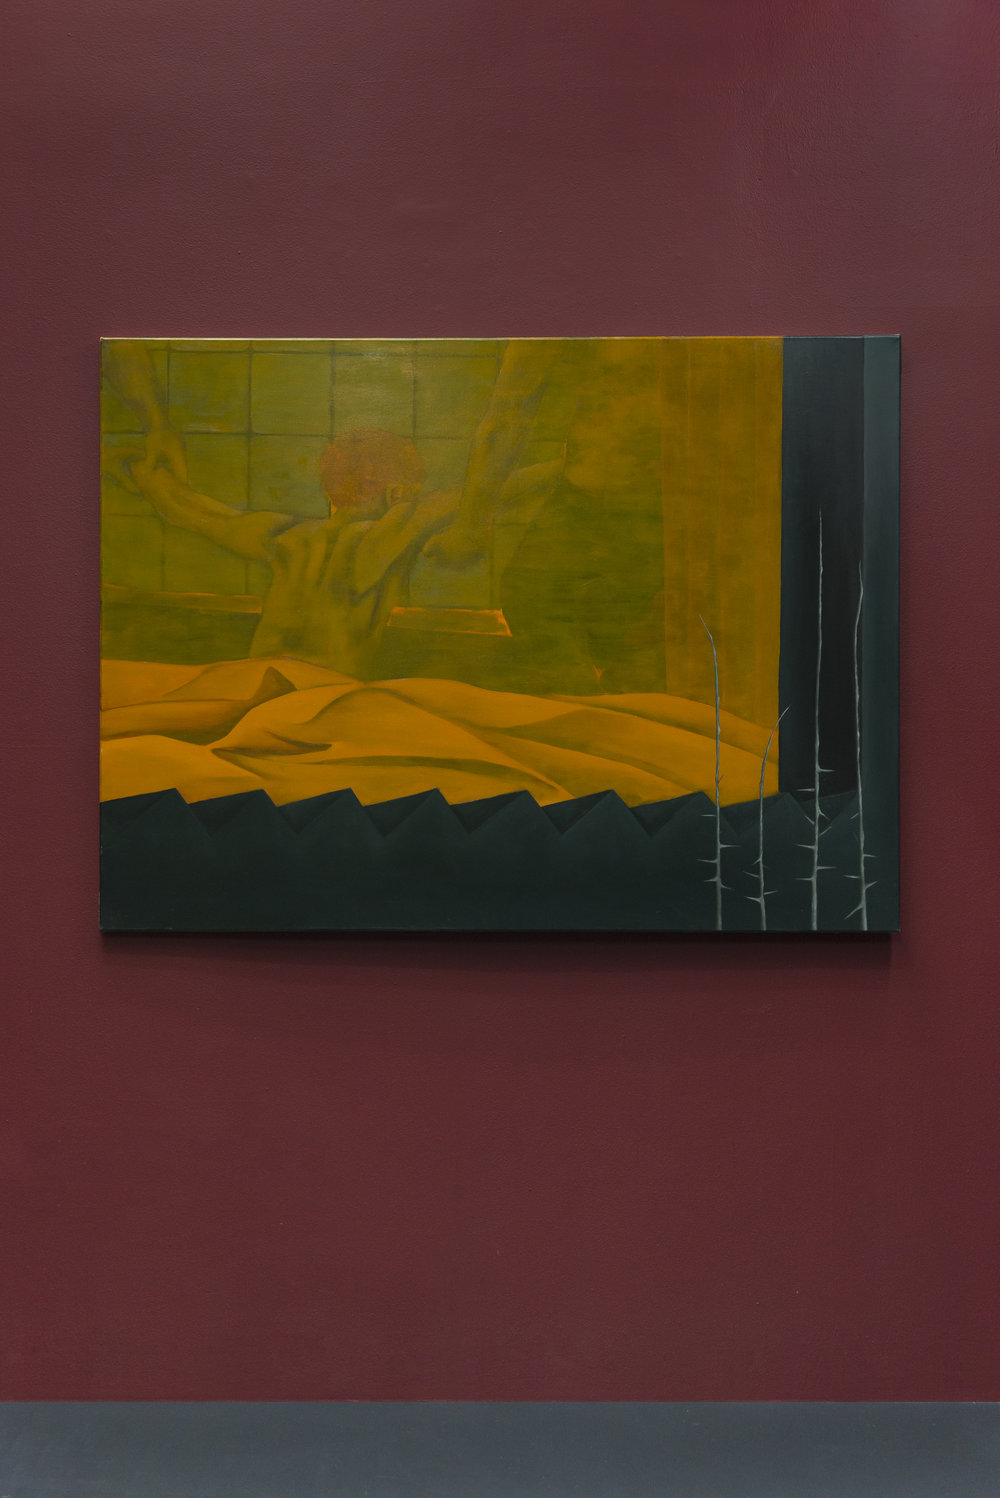 Lewis Hammond,  The Deposition , Oil on canvas, 58 x 46 inches